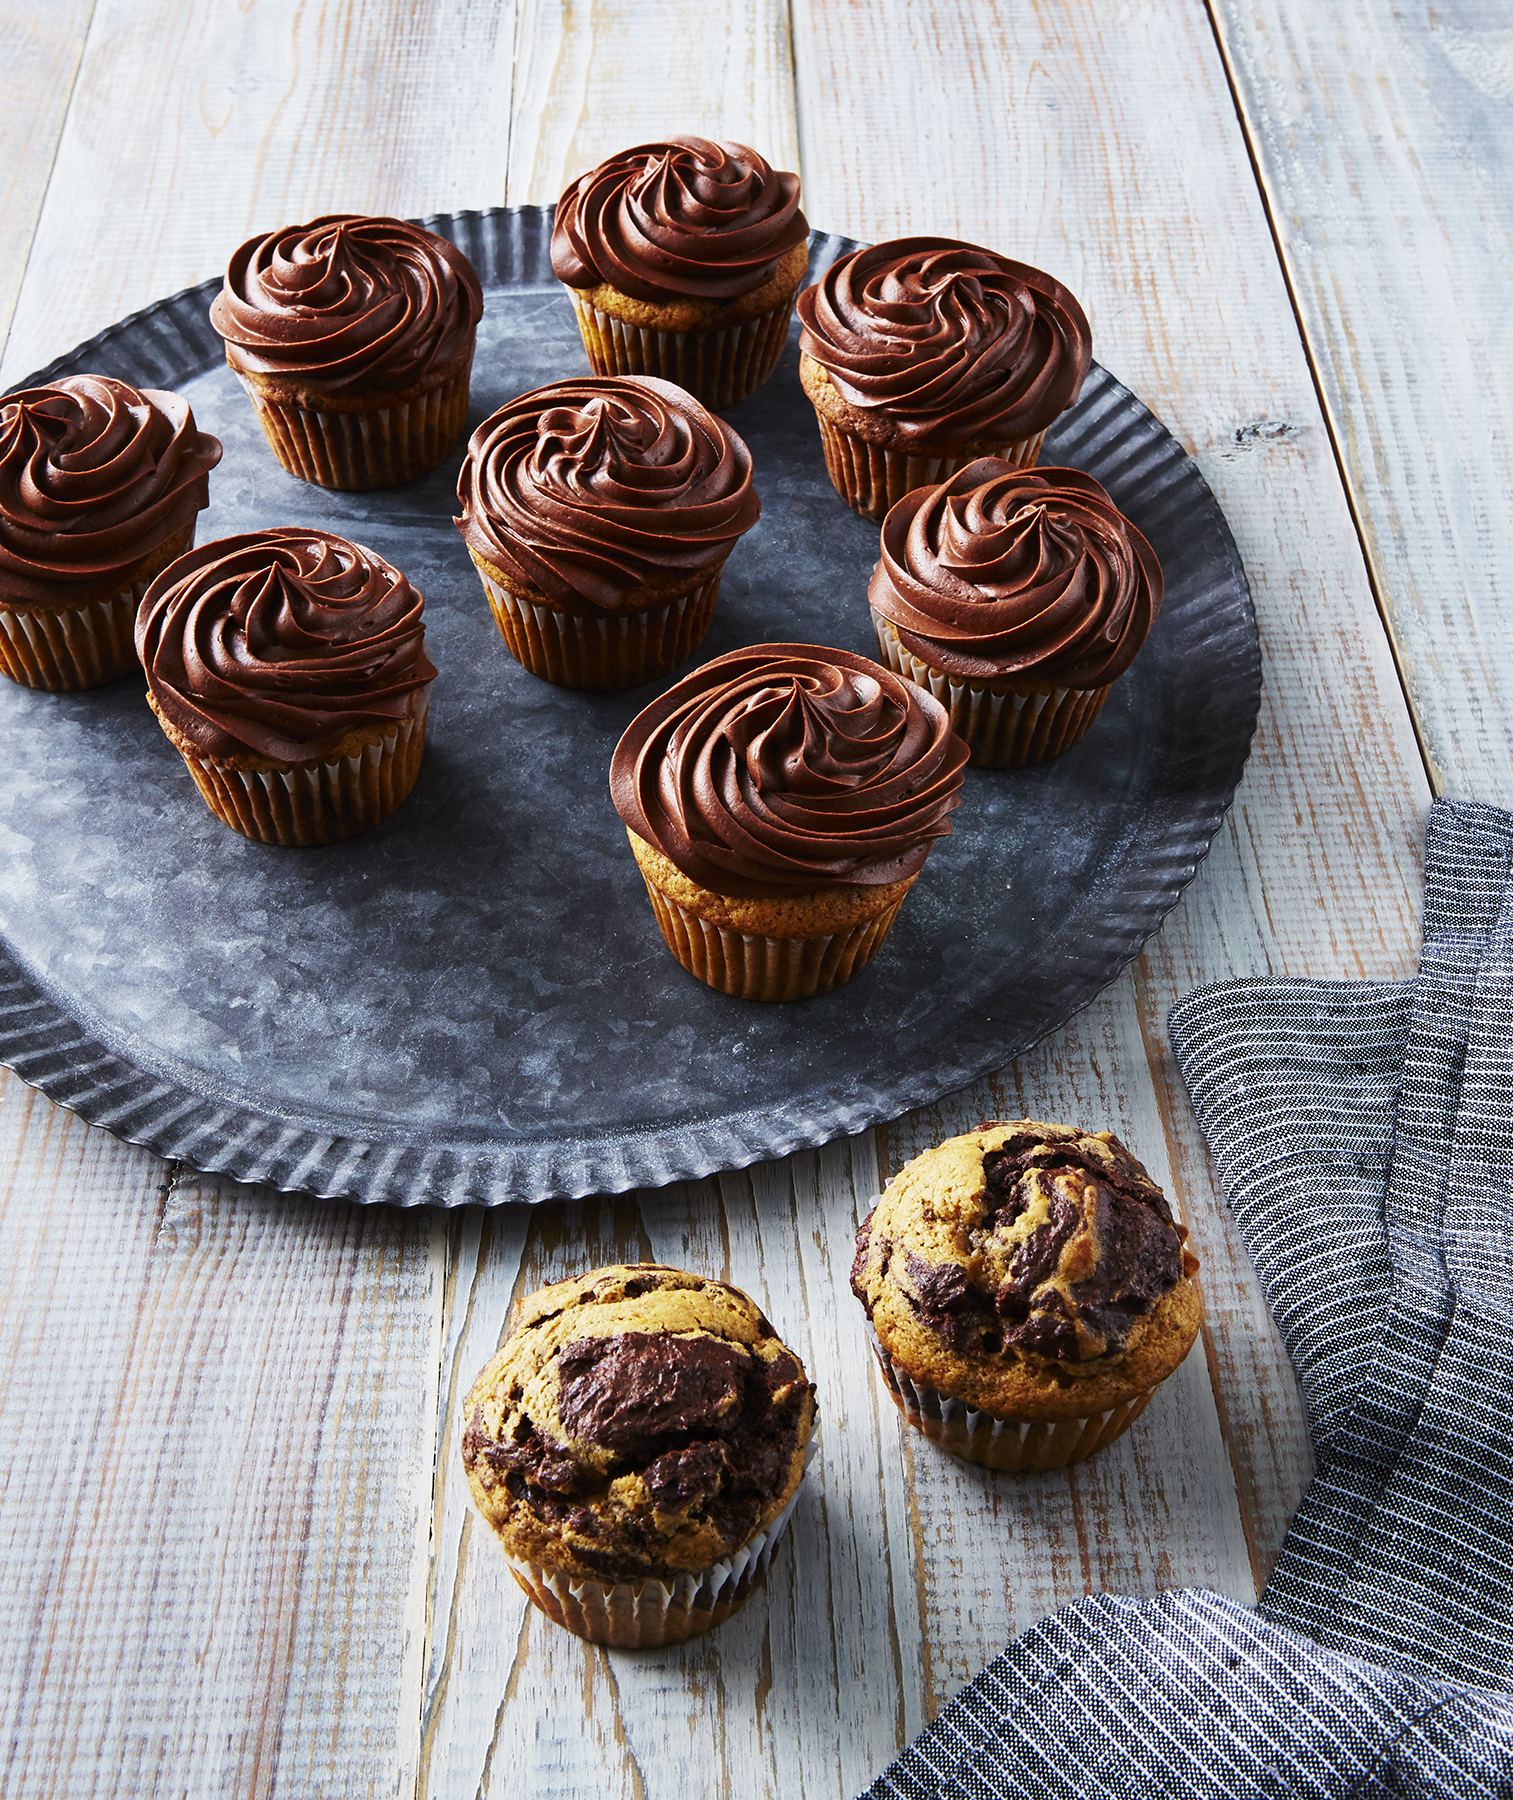 Pumpkin Chocolate Swirl Cupcakes